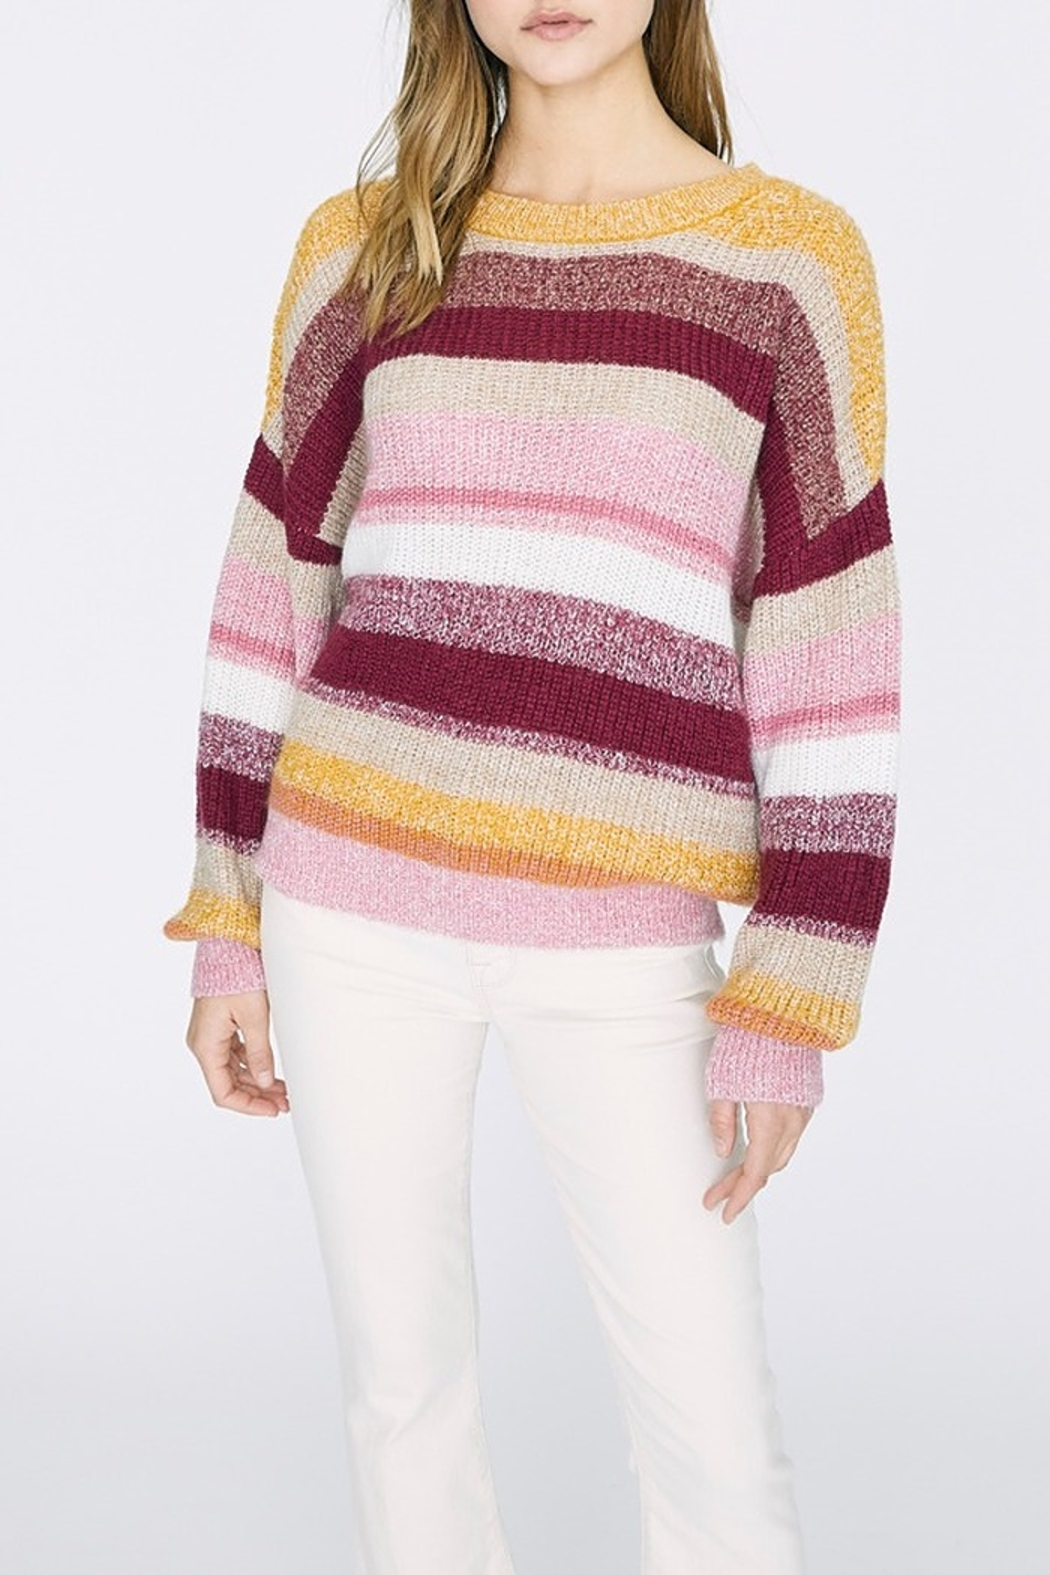 Sanctuary Blurred Lines Sweater - Main Image